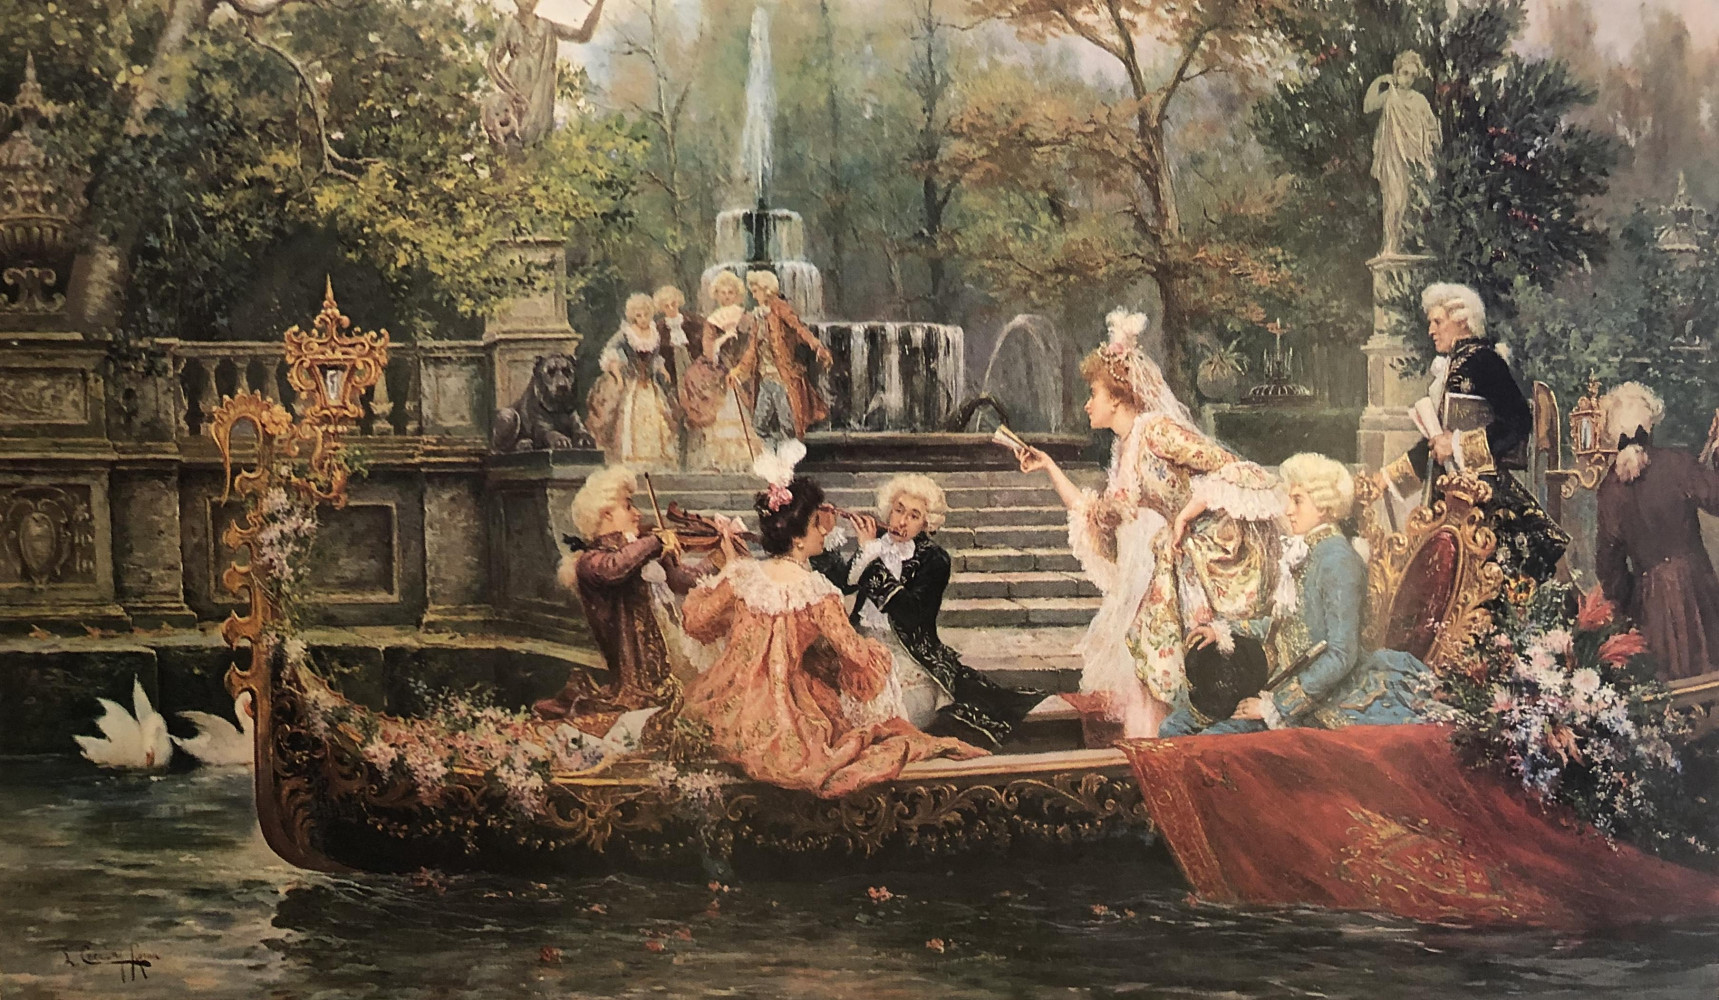 An Afternoon Idyll by Lorenzo Cecconi